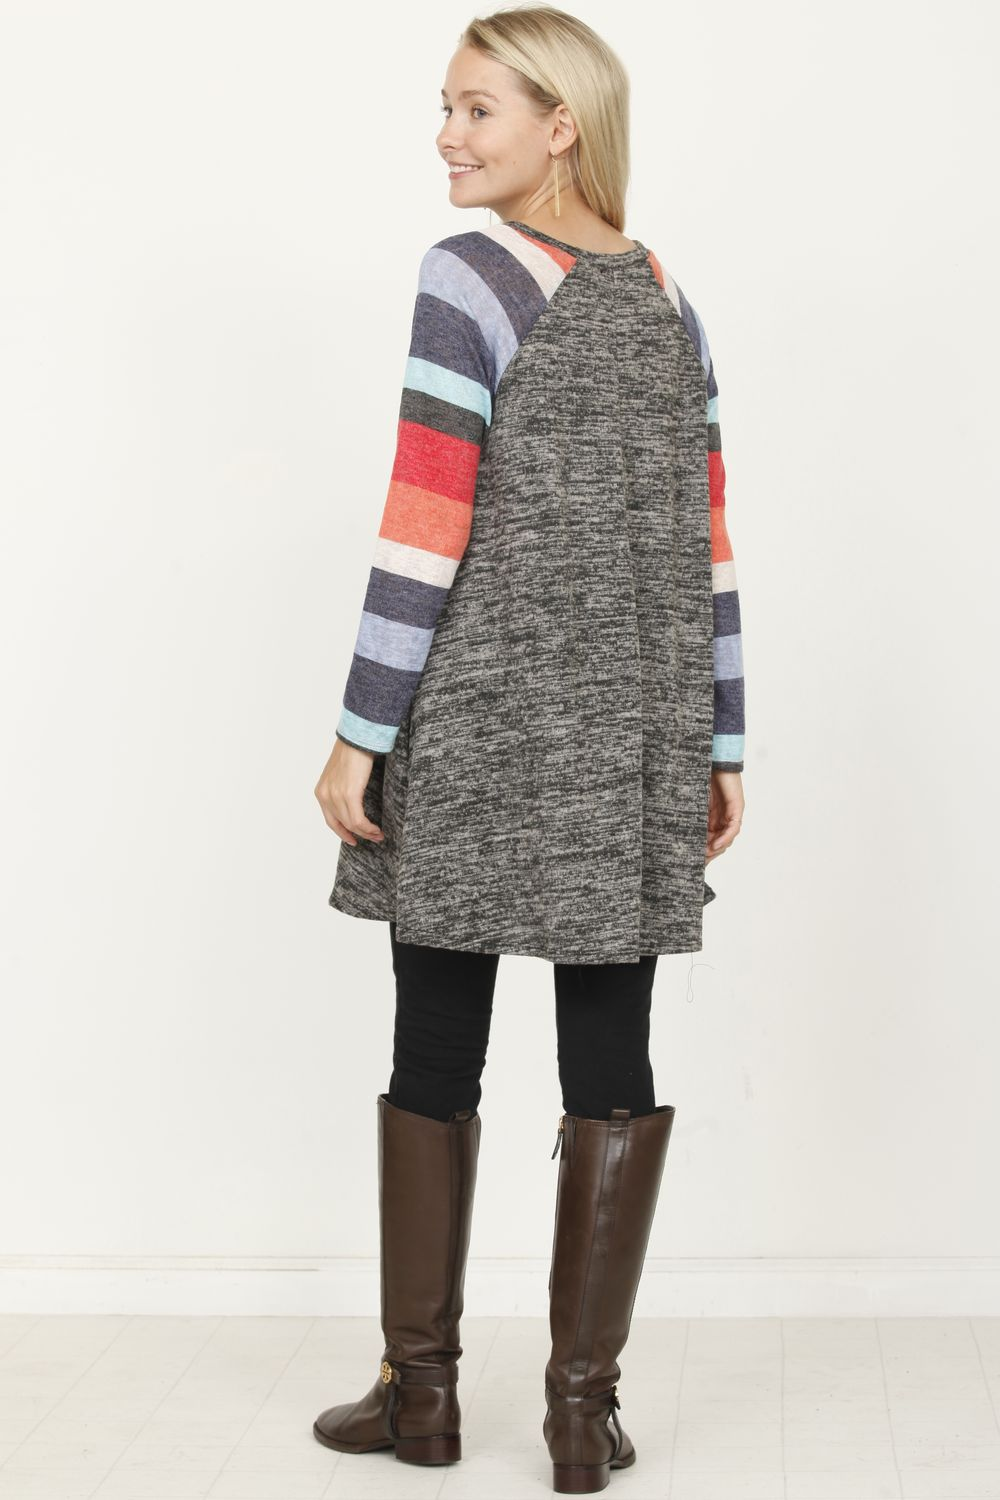 Charcoal Multi-Color Sleeve A Line Tunic